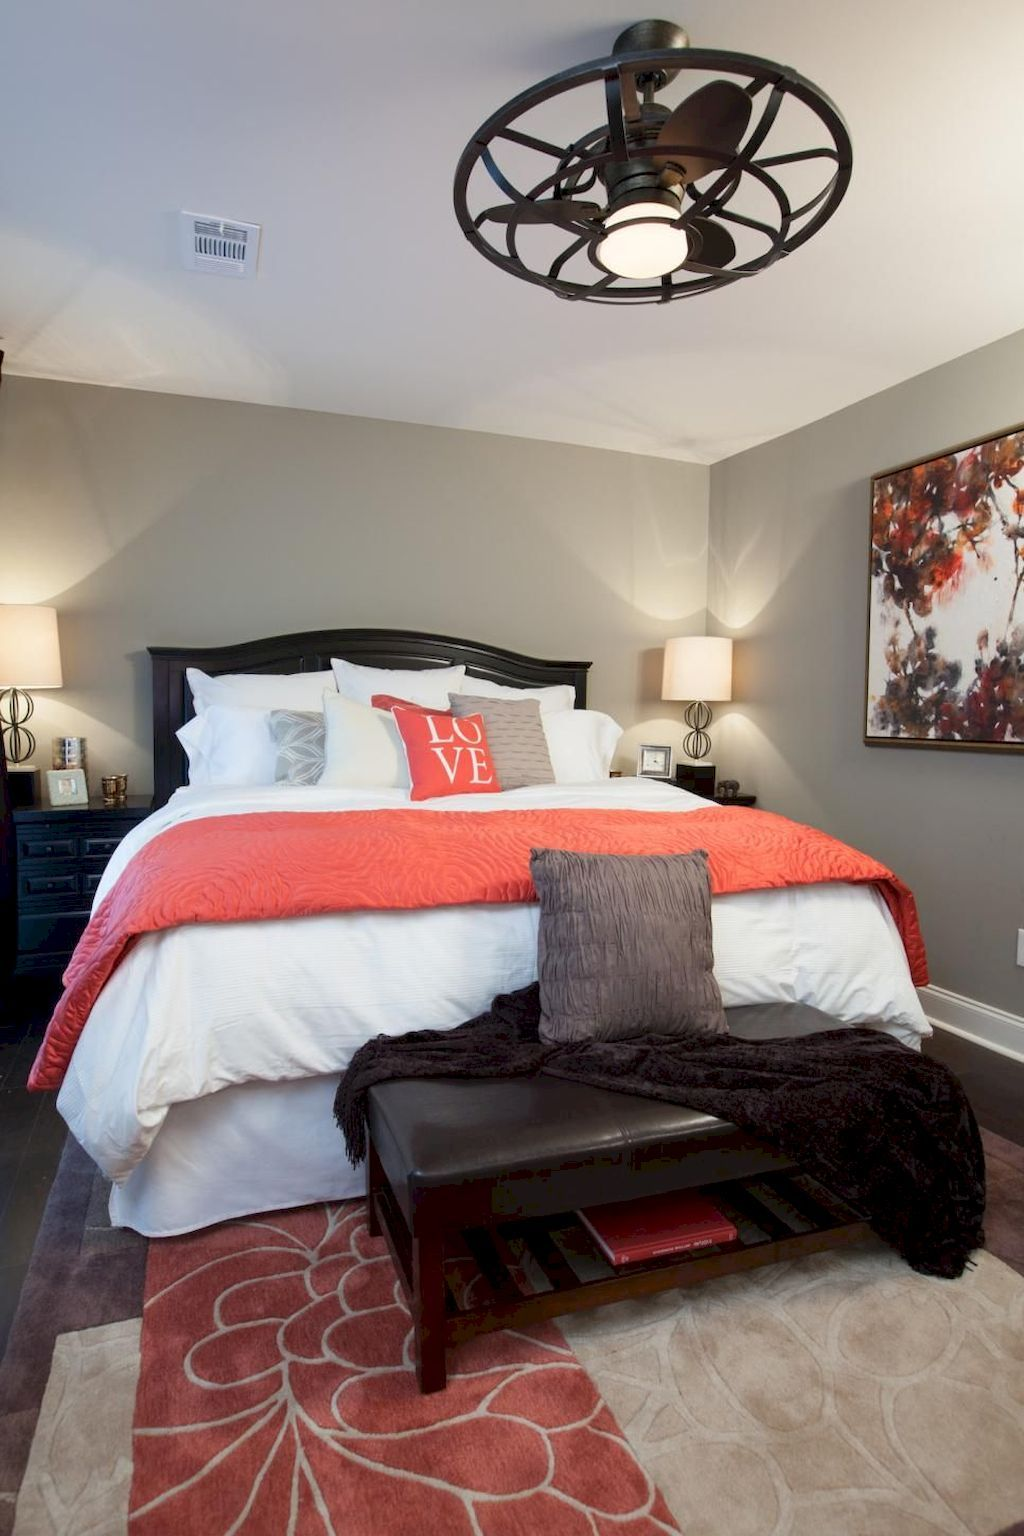 Master bedroom design ideas   Gorgeous Master Bedroom Design Ideas  Master bedroom design